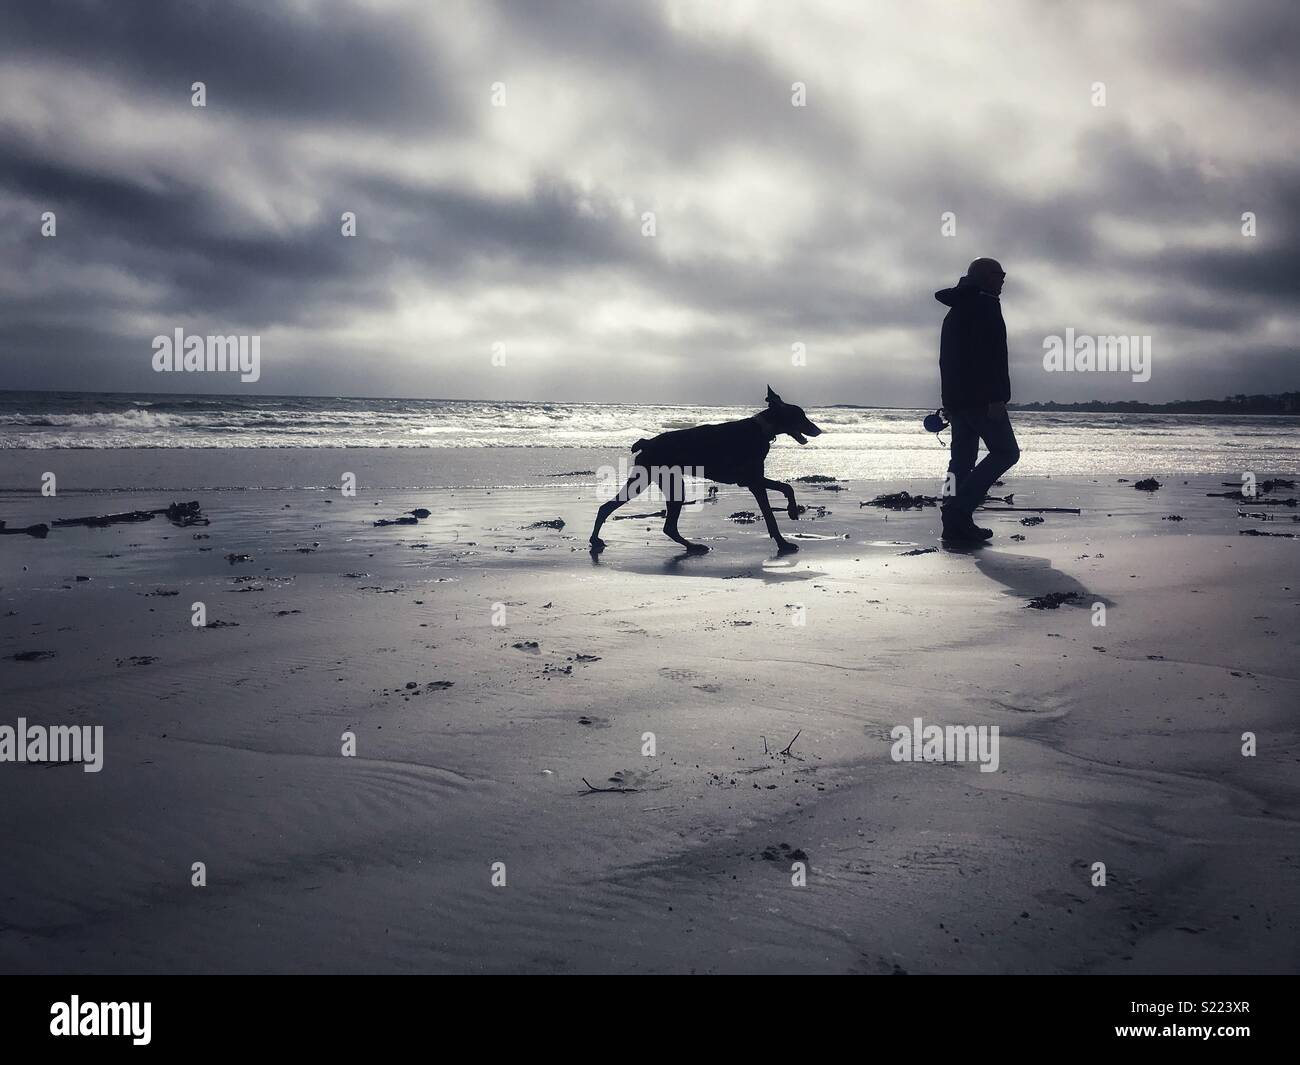 Walking the dog along the beach. - Stock Image